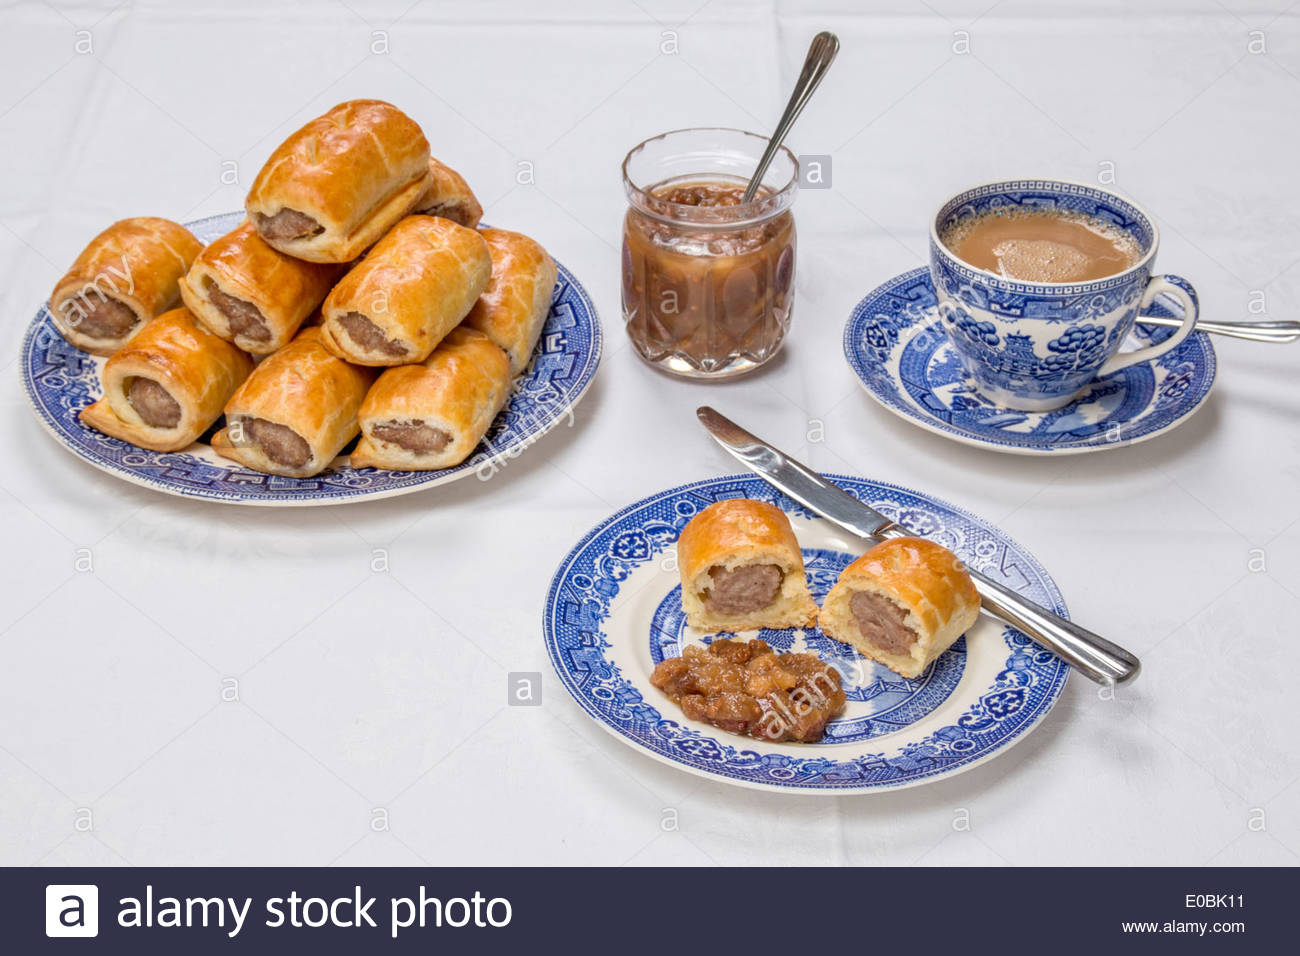 making-sausage-rolls-using-ready-rolled-pastry-cut-sausage-roll-on-E0BK11%5B1%5D